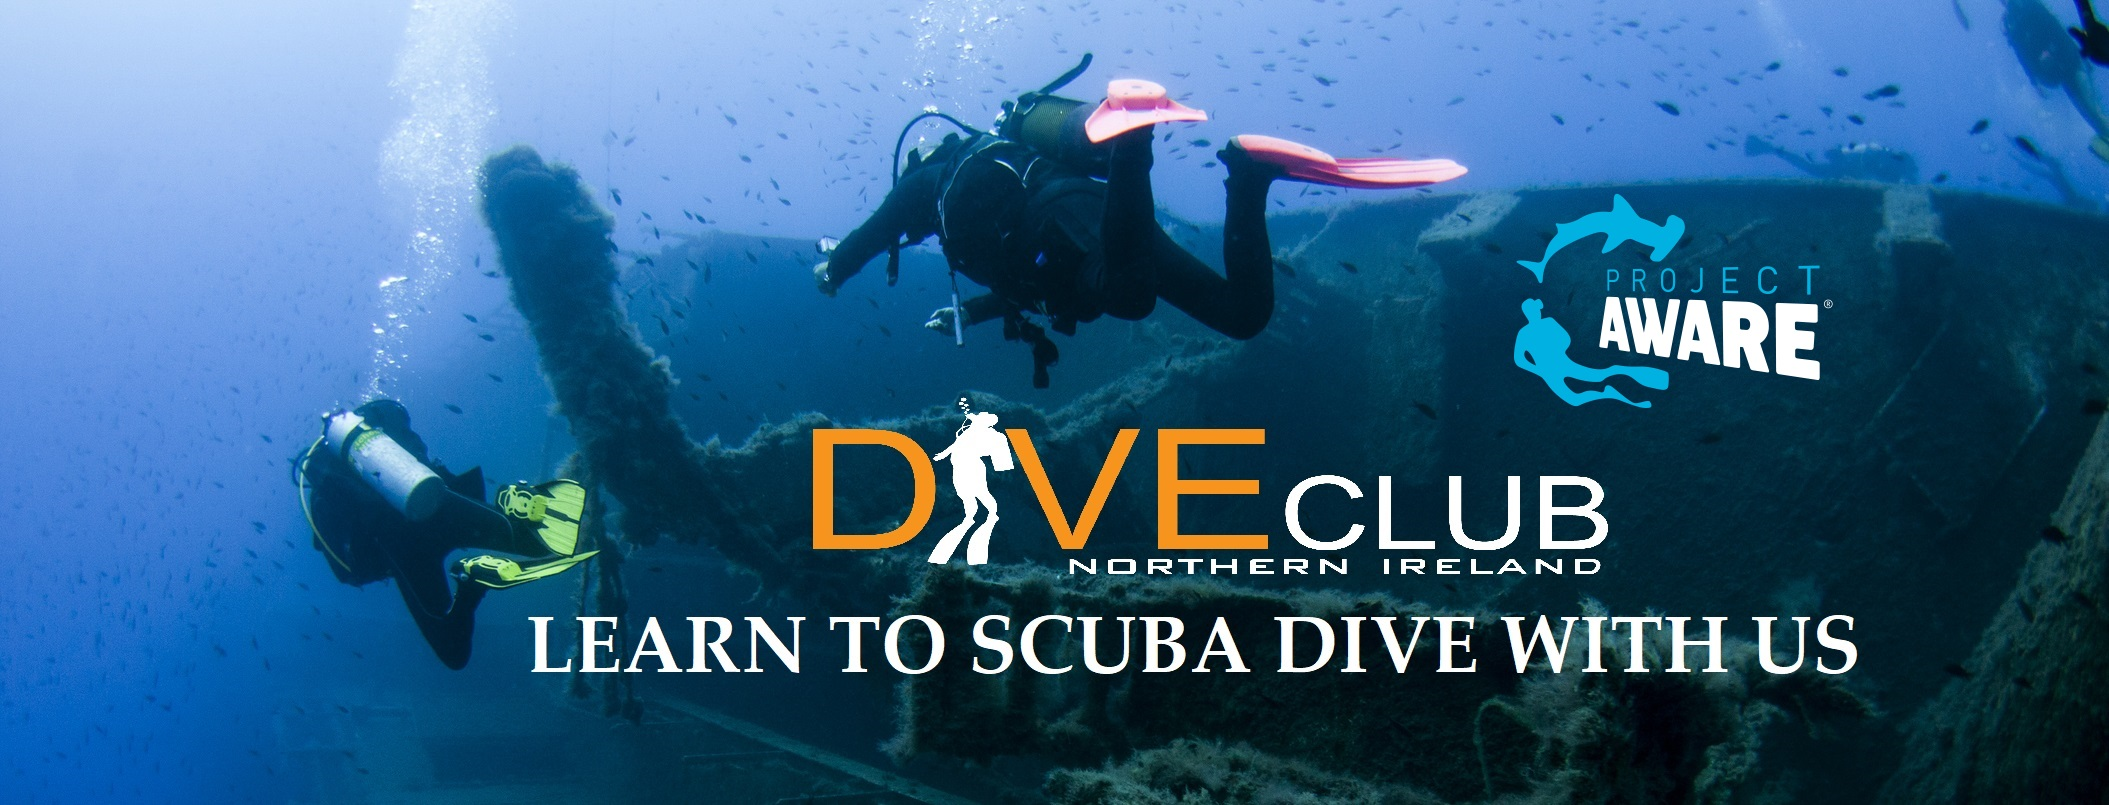 Learn to Scuba dive with us